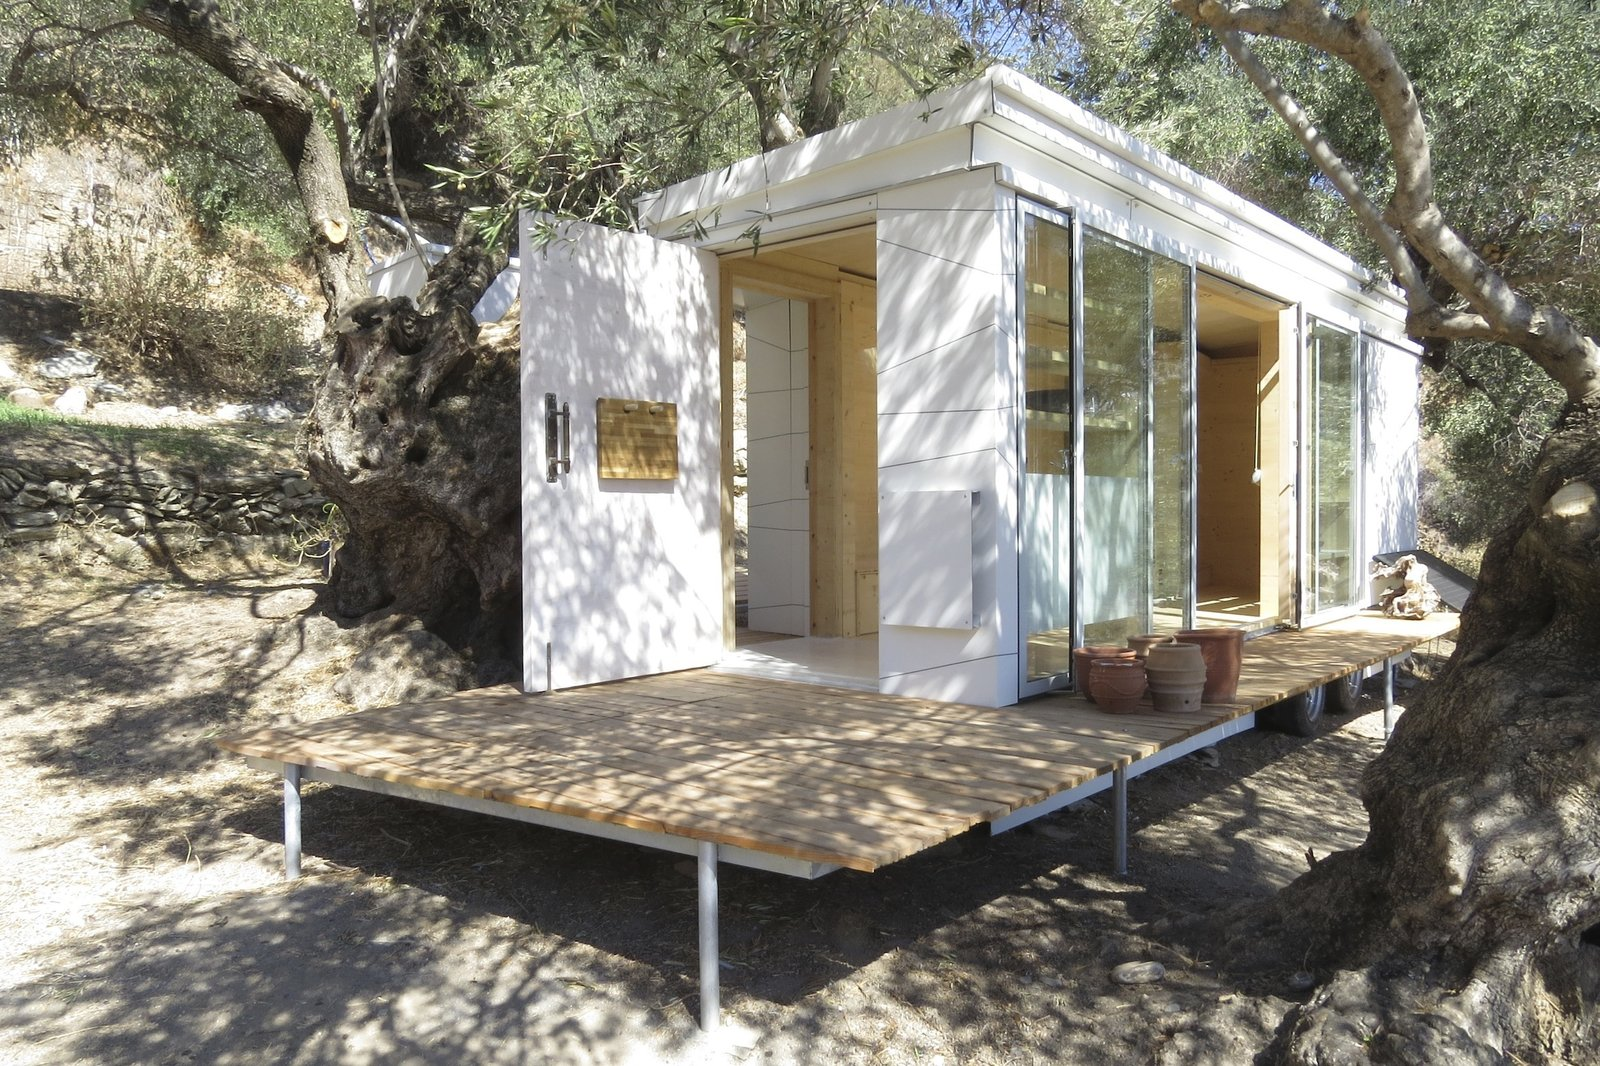 A Yoga Teacher's Tiny Home on Wheels Goes Off-Grid in Greece